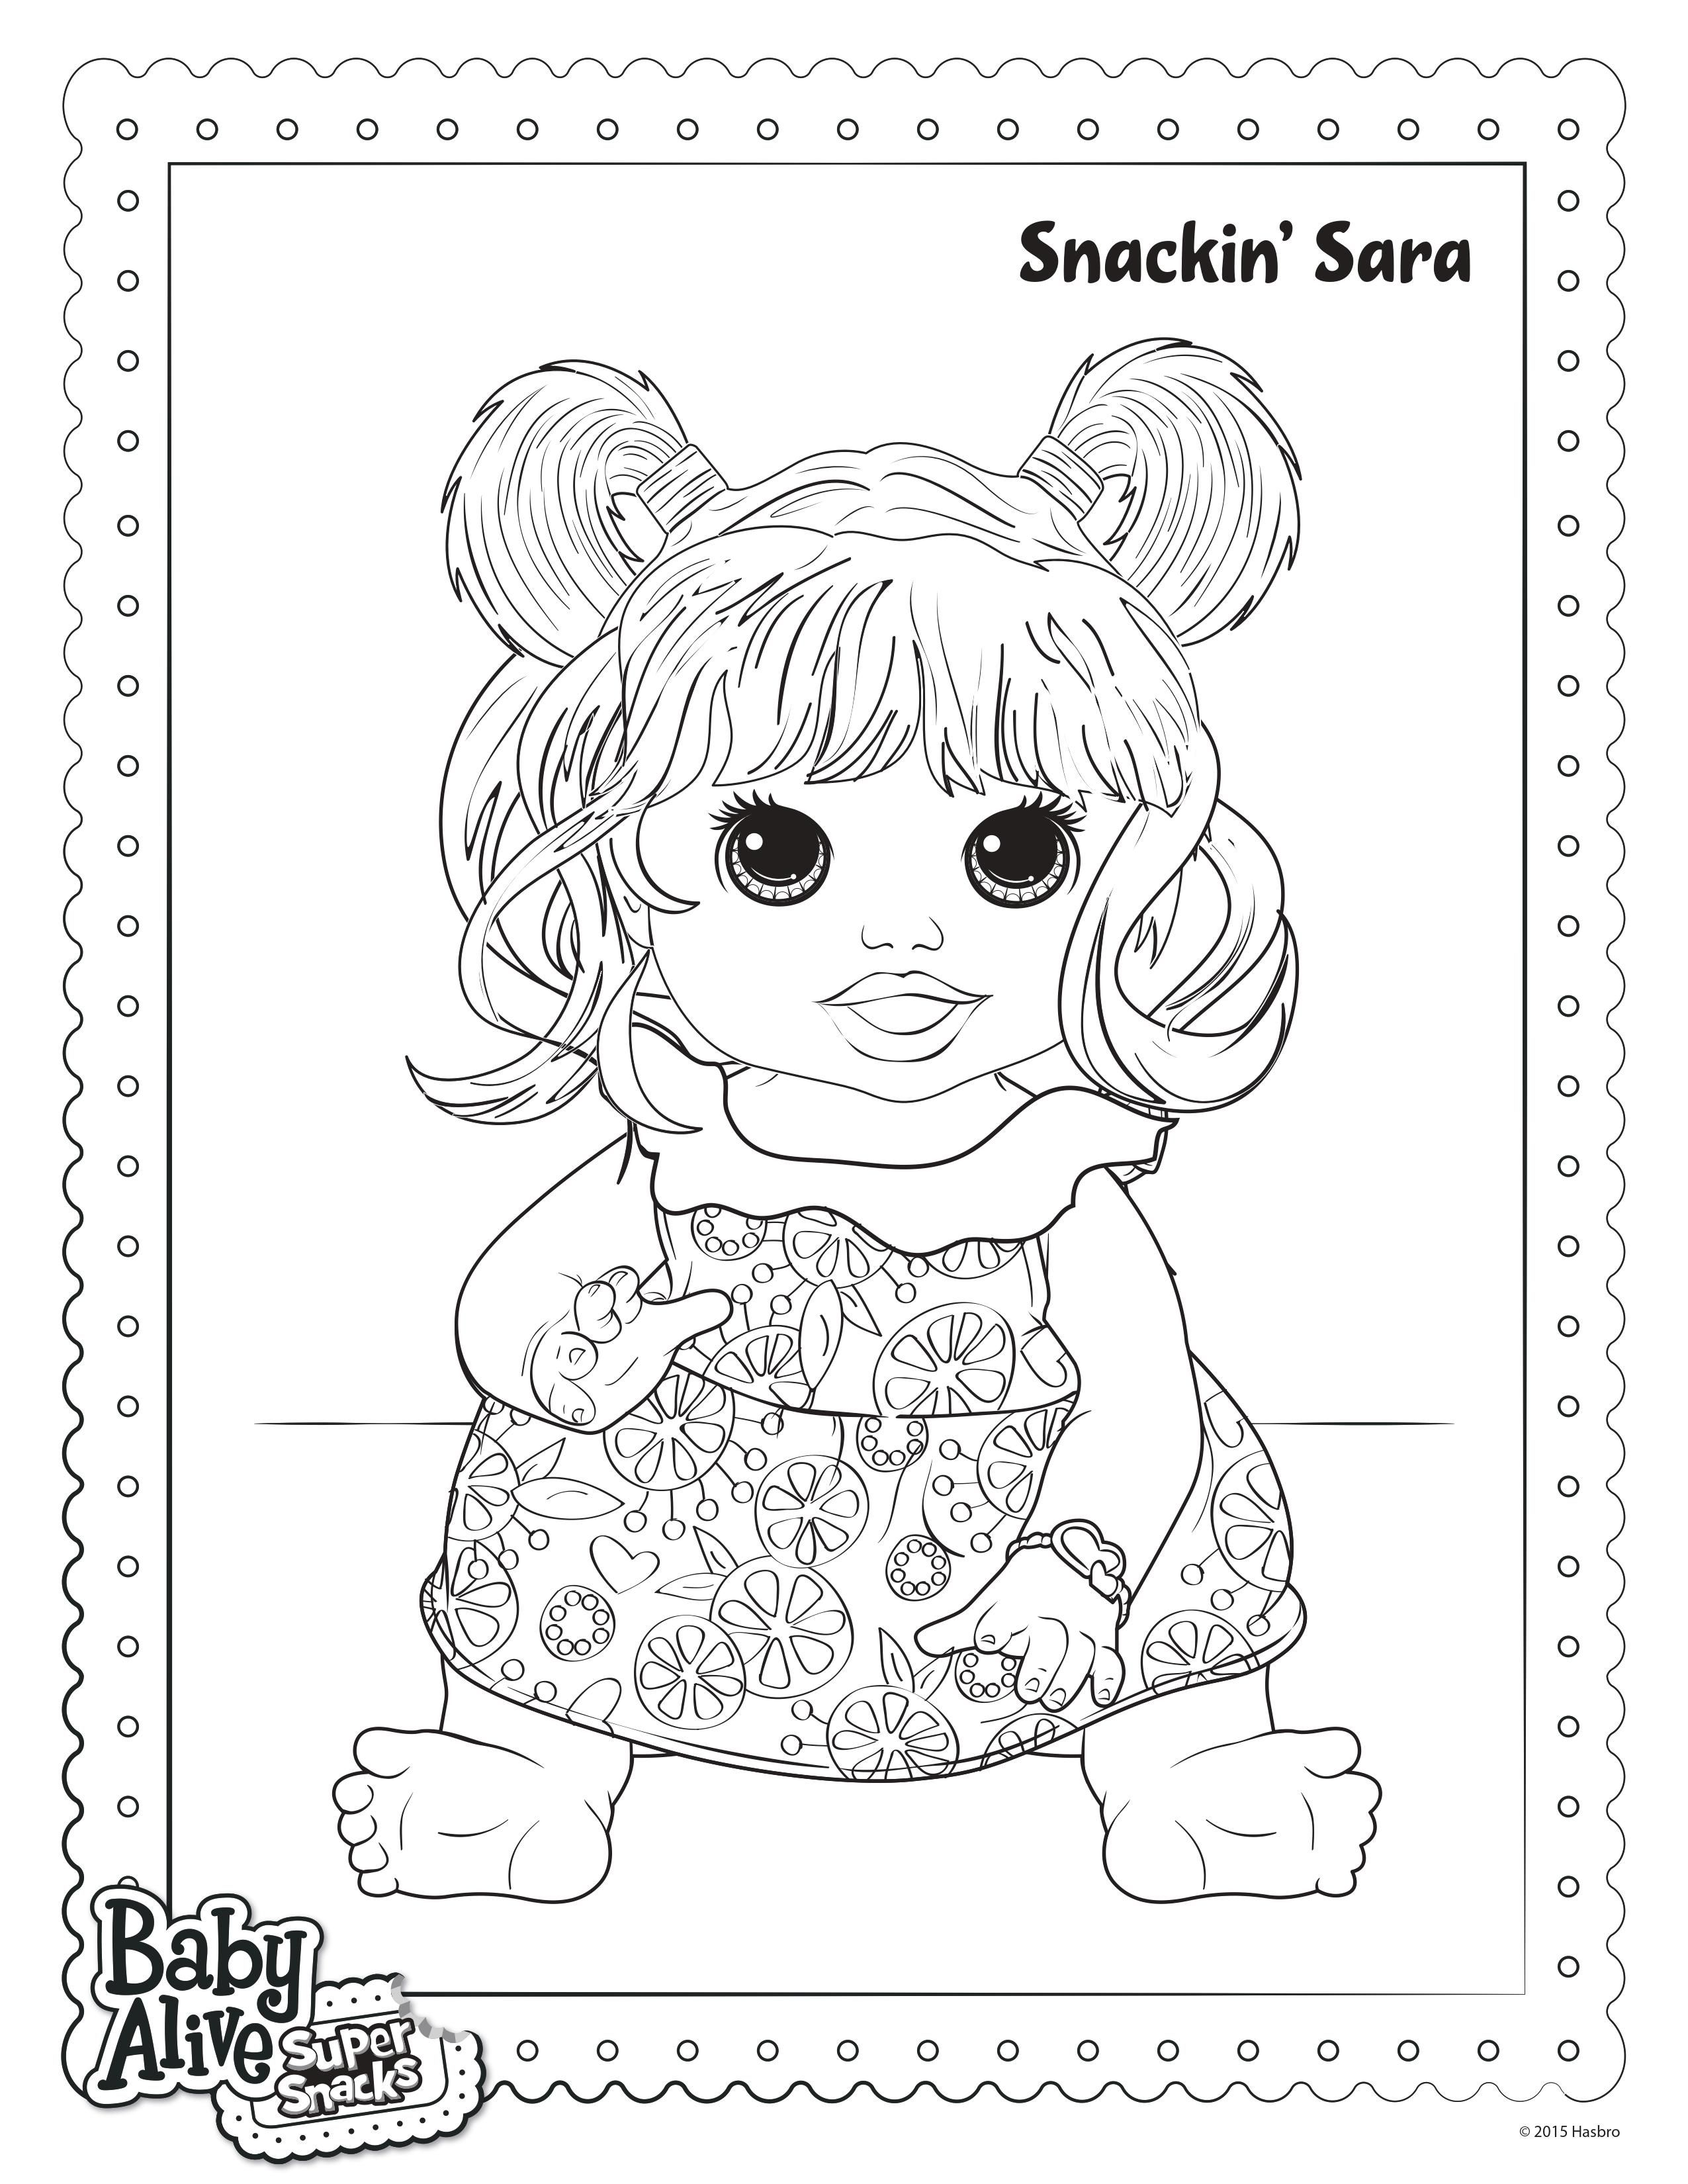 Baby Alive Para Colorir Coloring Pages Pinterest Baby Alive